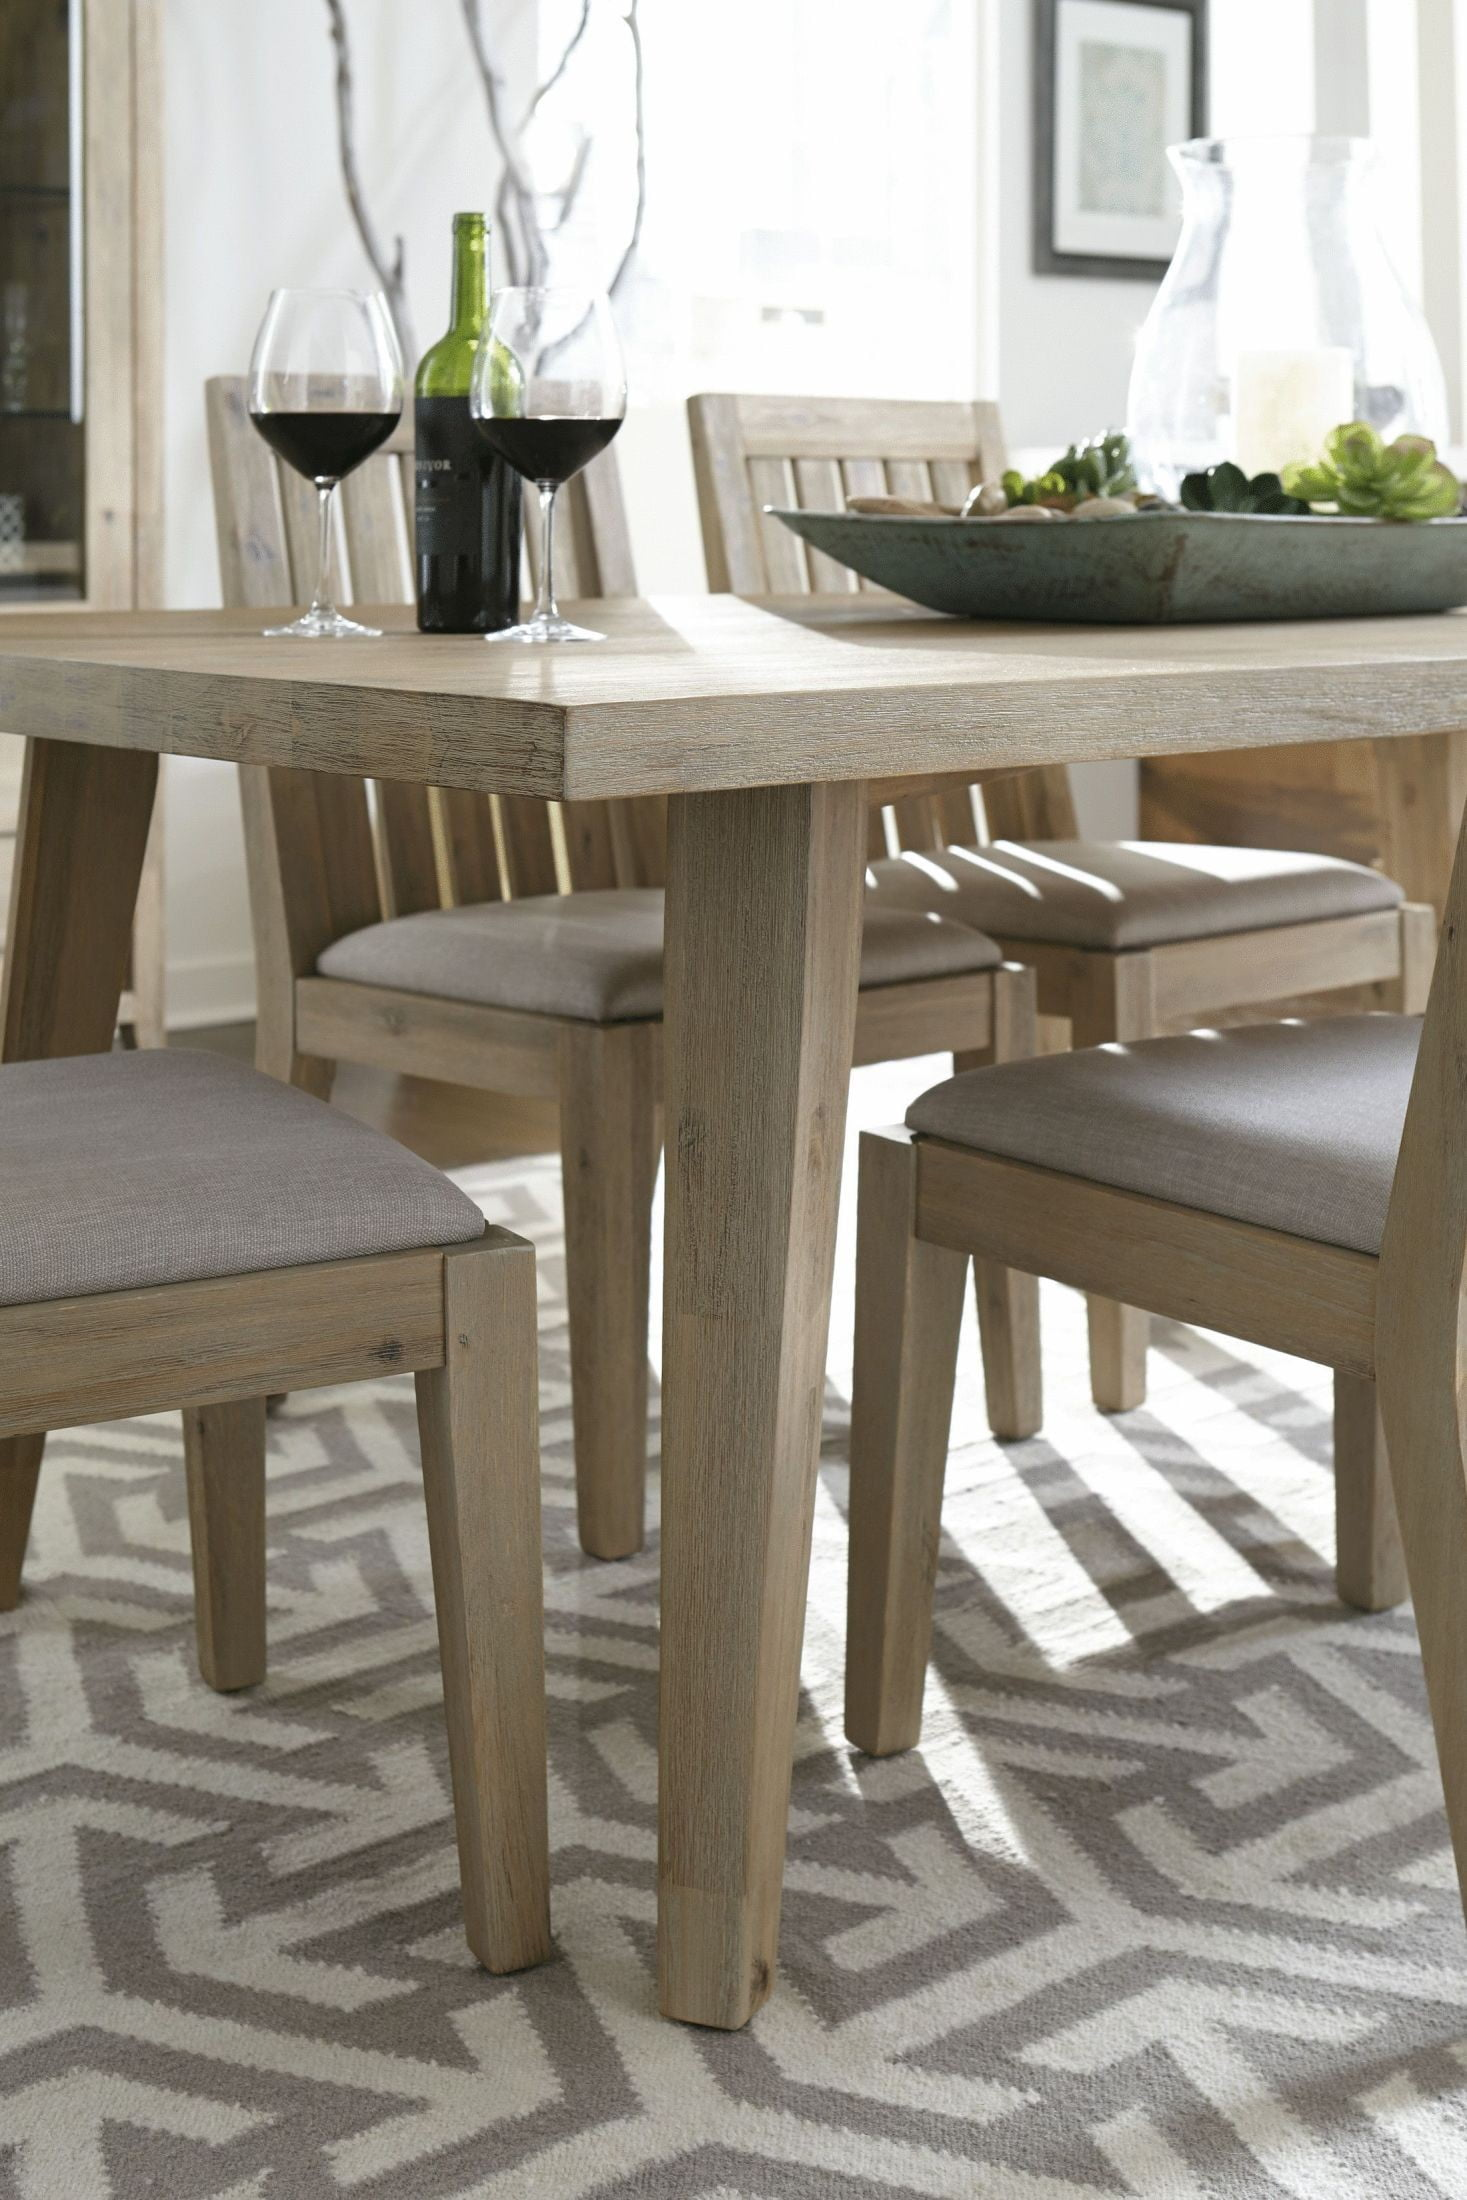 Casablanca weathered acacia rectangular dining table